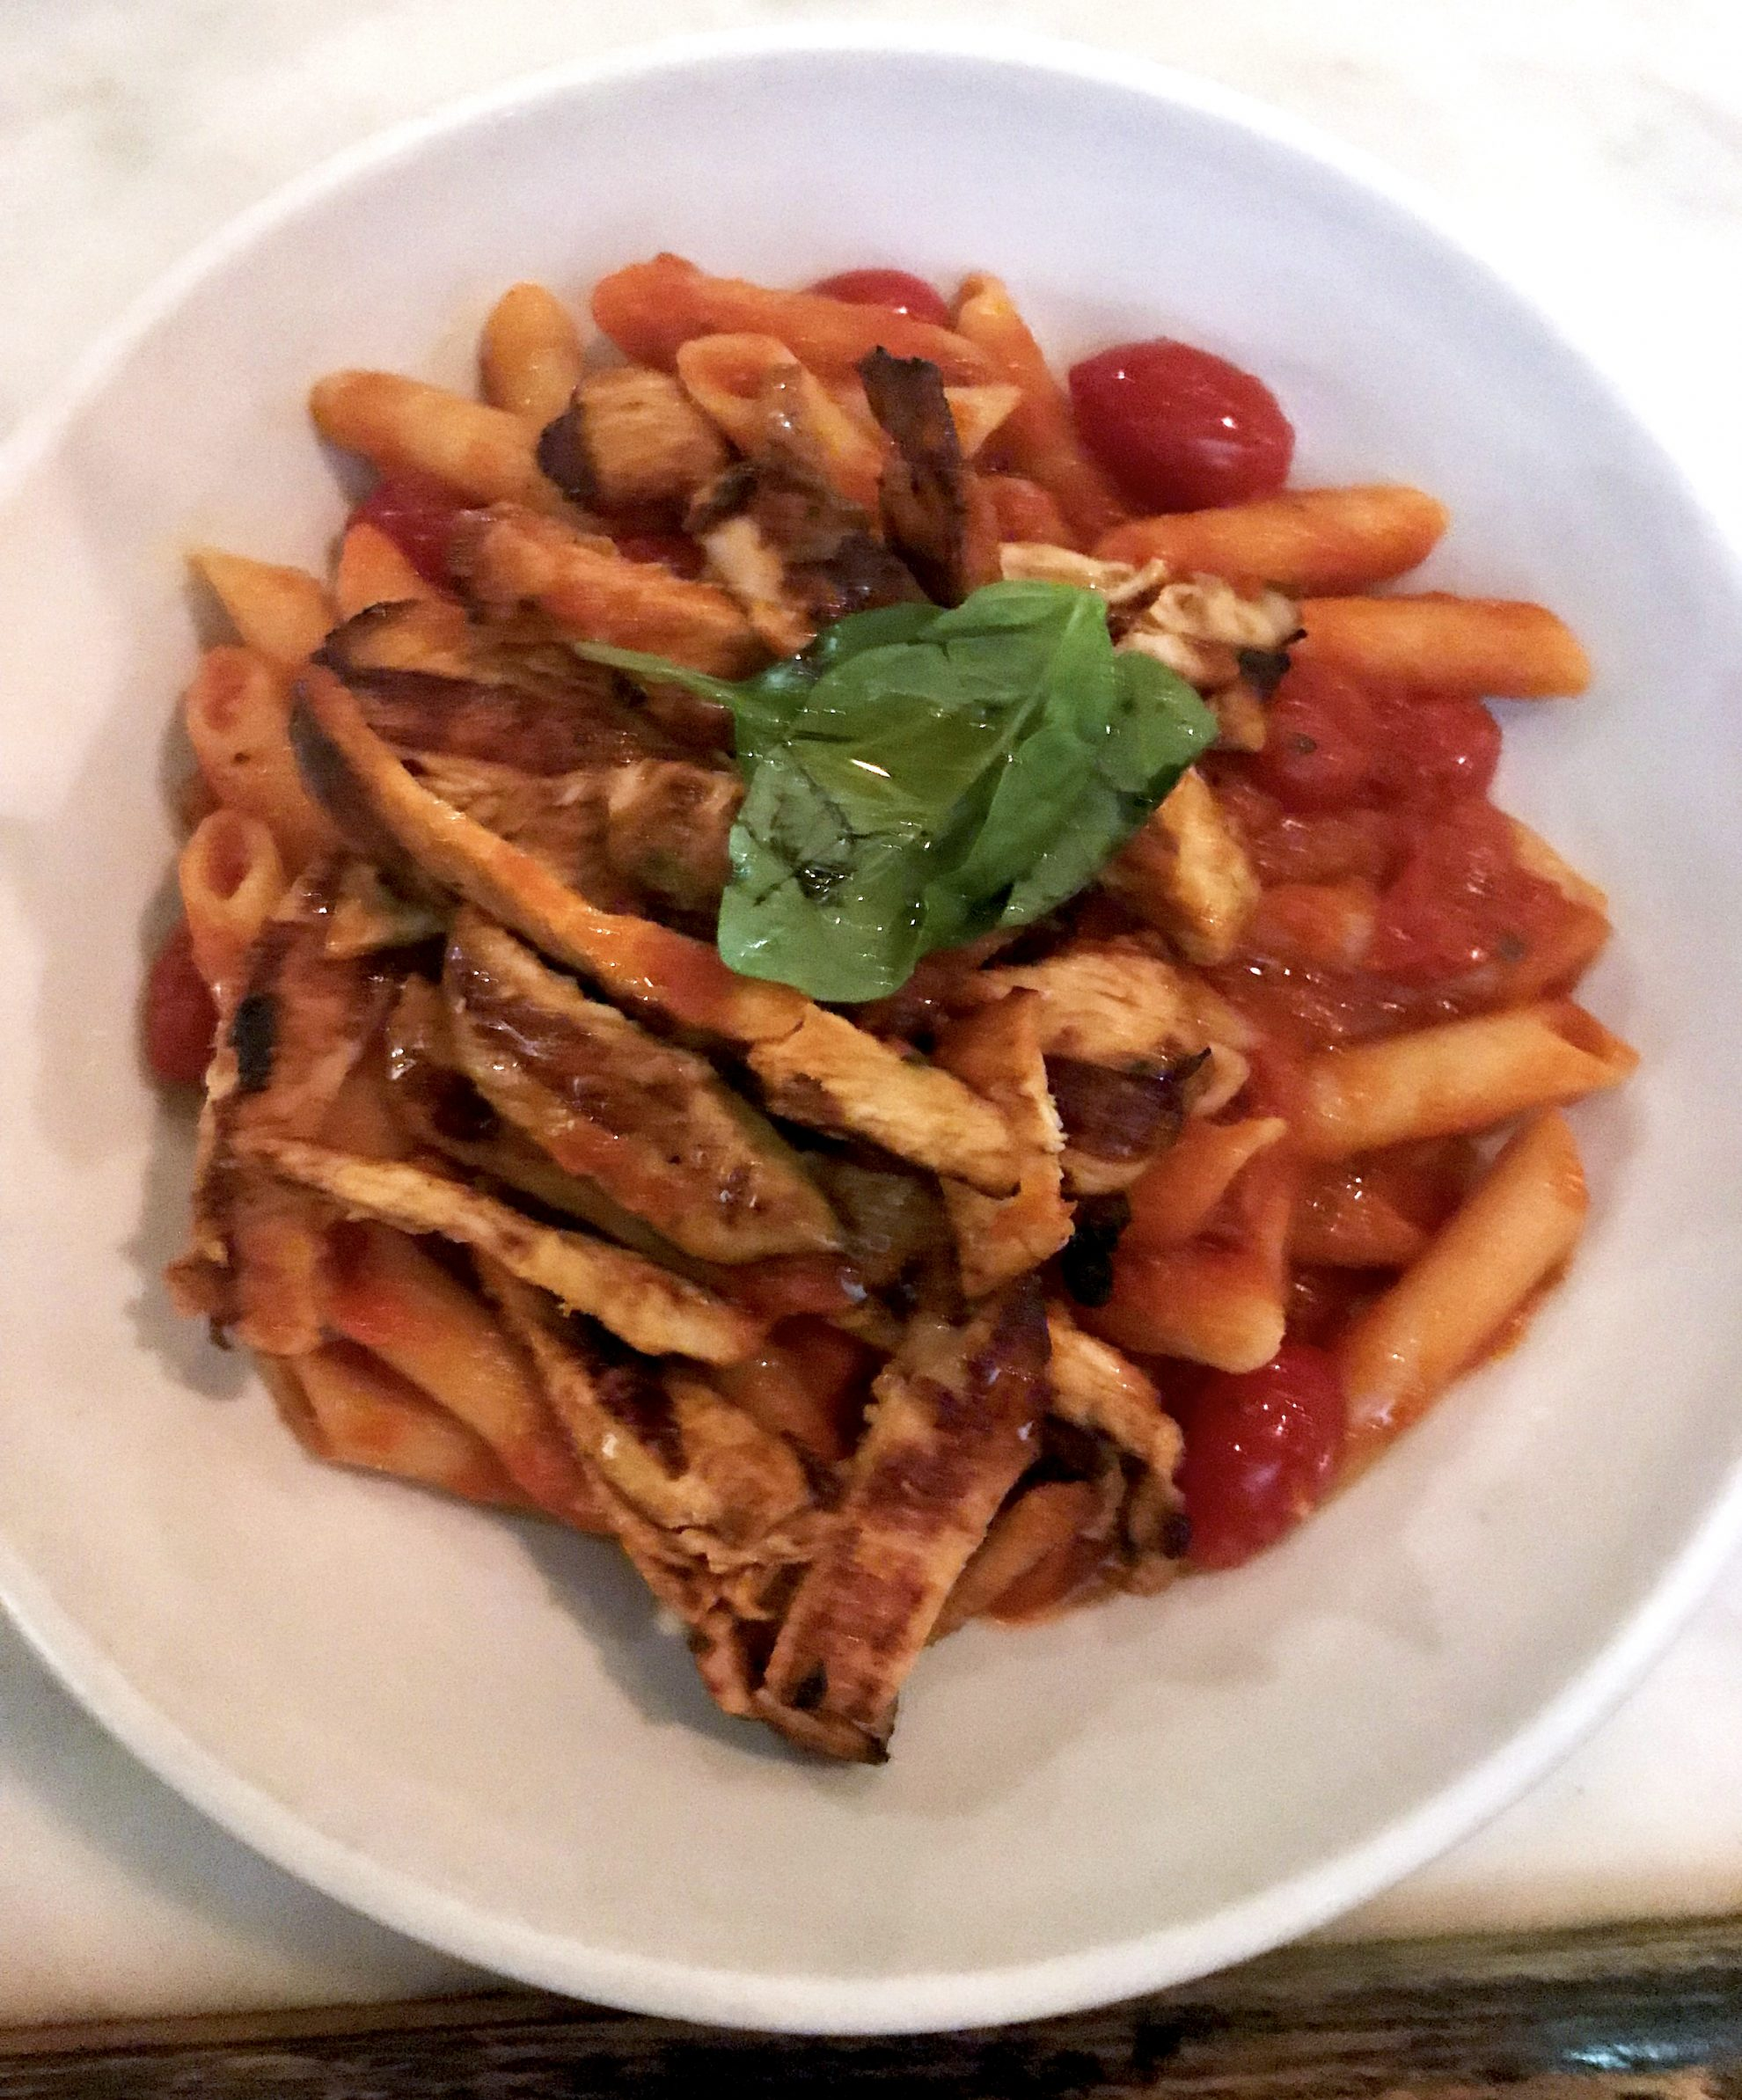 Gluten free pasta from Nino's 46, one of many celiac friendly restaurants in New York